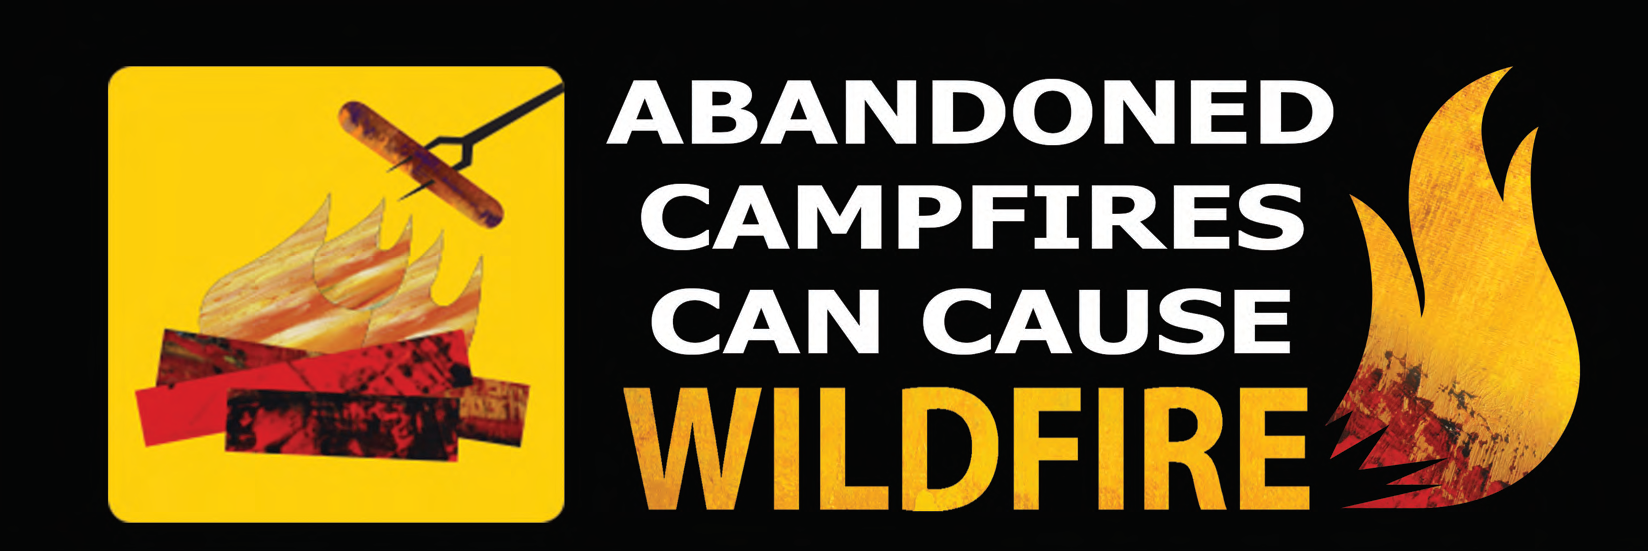 sign that says Abandoned Campfires can cause wildfire